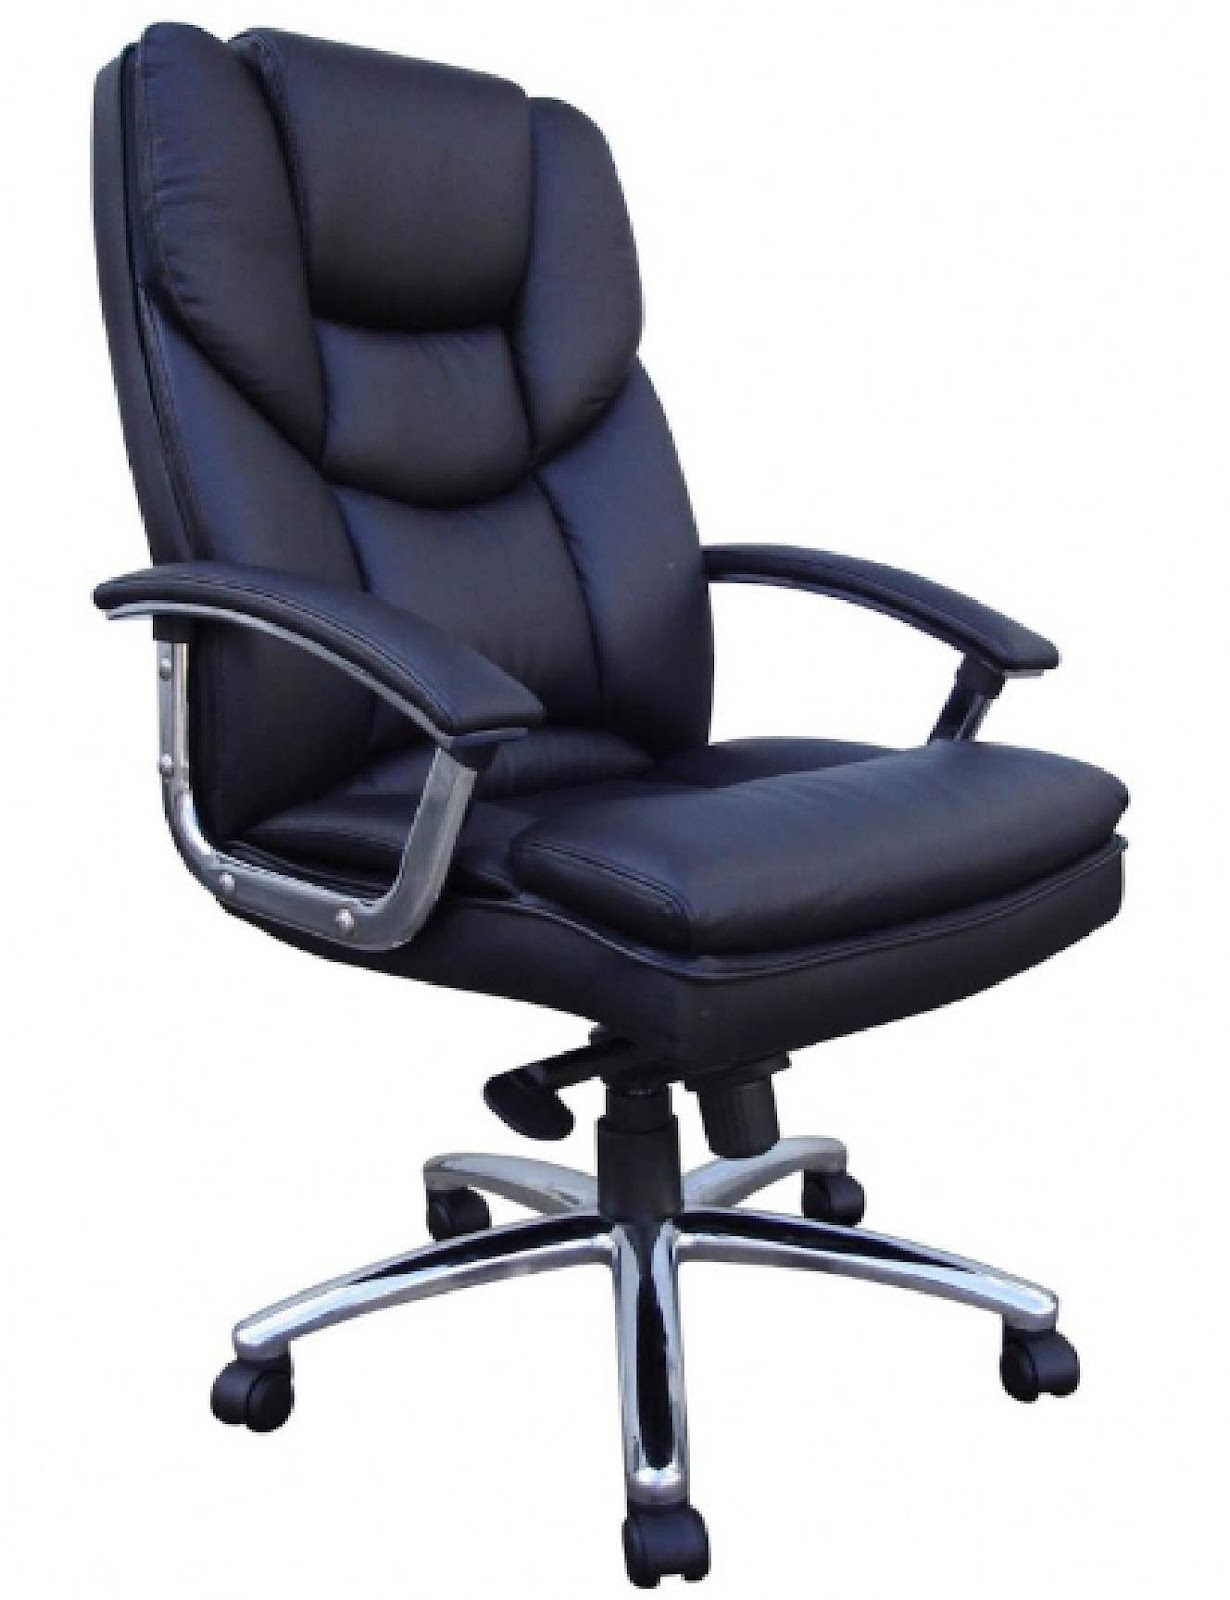 Comfortable office chairs designs an interior design - Office furnitur ...